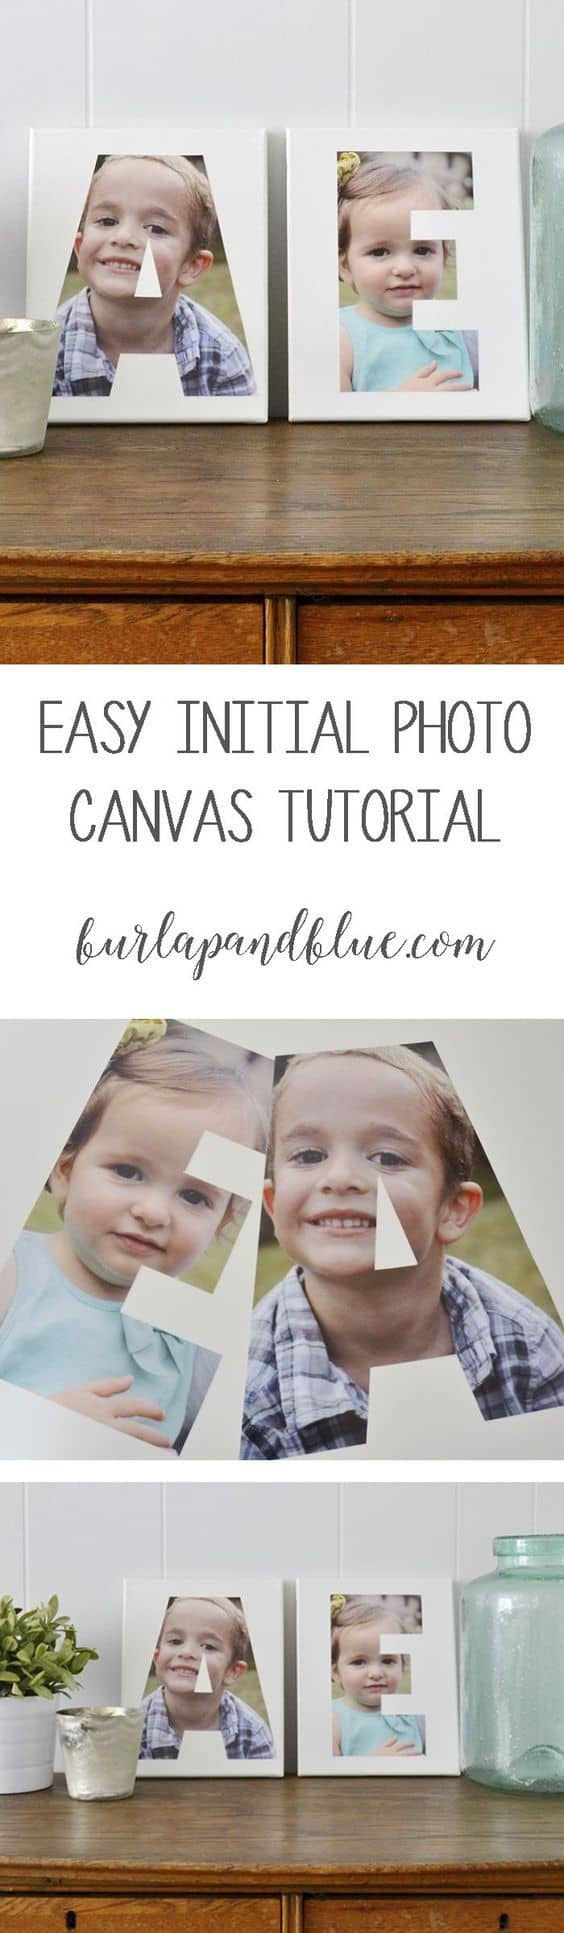 An easy personalized photo canvas idea, perfect for gifts